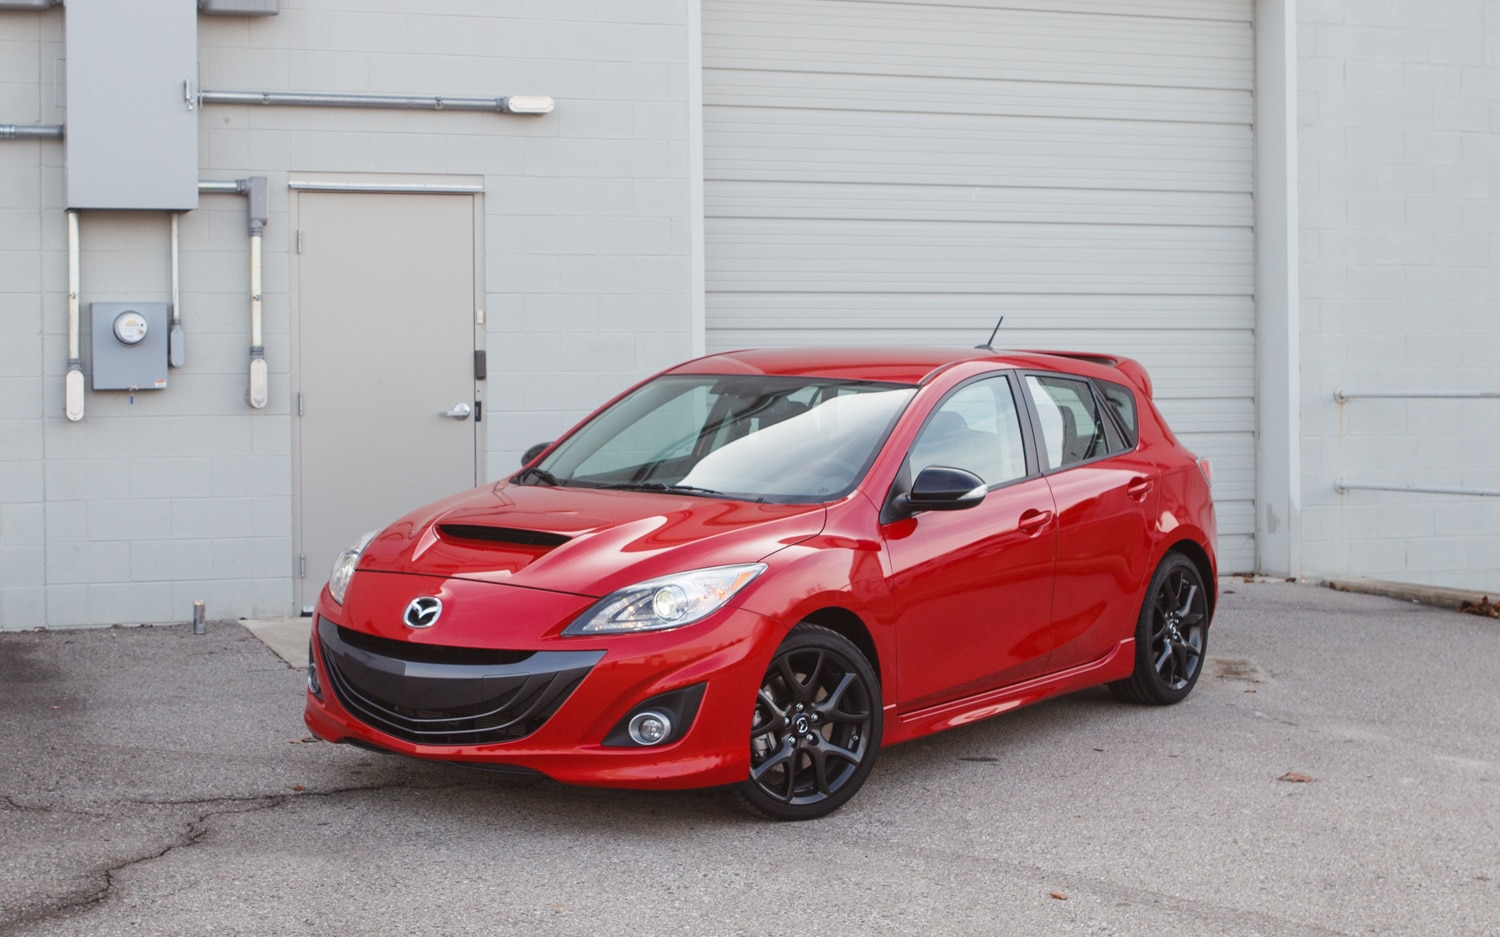 Awesome A Big Thumbs Up To Mazda For All The Small Changes Made To The 2013  Mazdaspeed 3.